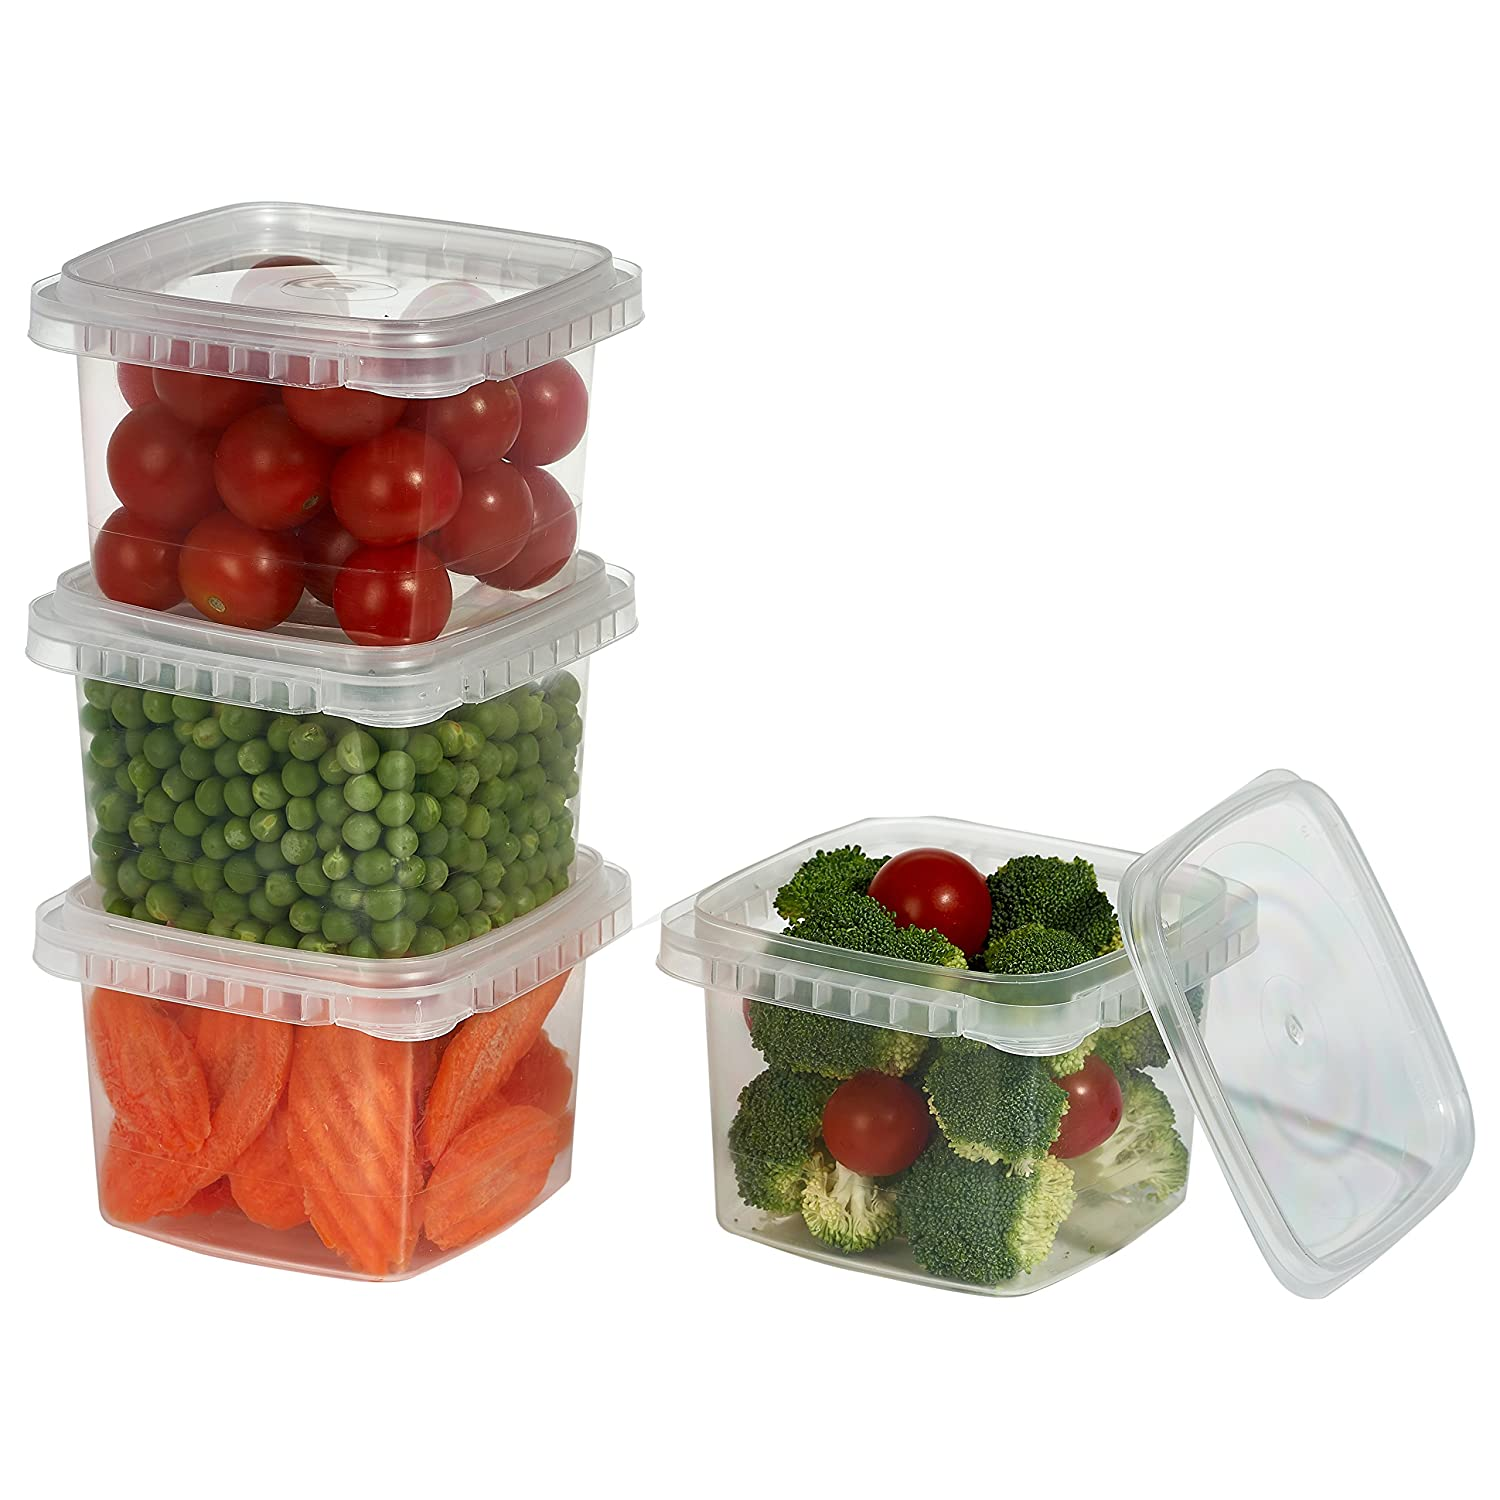 16 oz. Clear Deli Food Storage Containers With Lids Tamper evident security system and easy stackable and space saver shape Restaurant Take Out/Freezer microwave and dishwasher safe - 25 sets